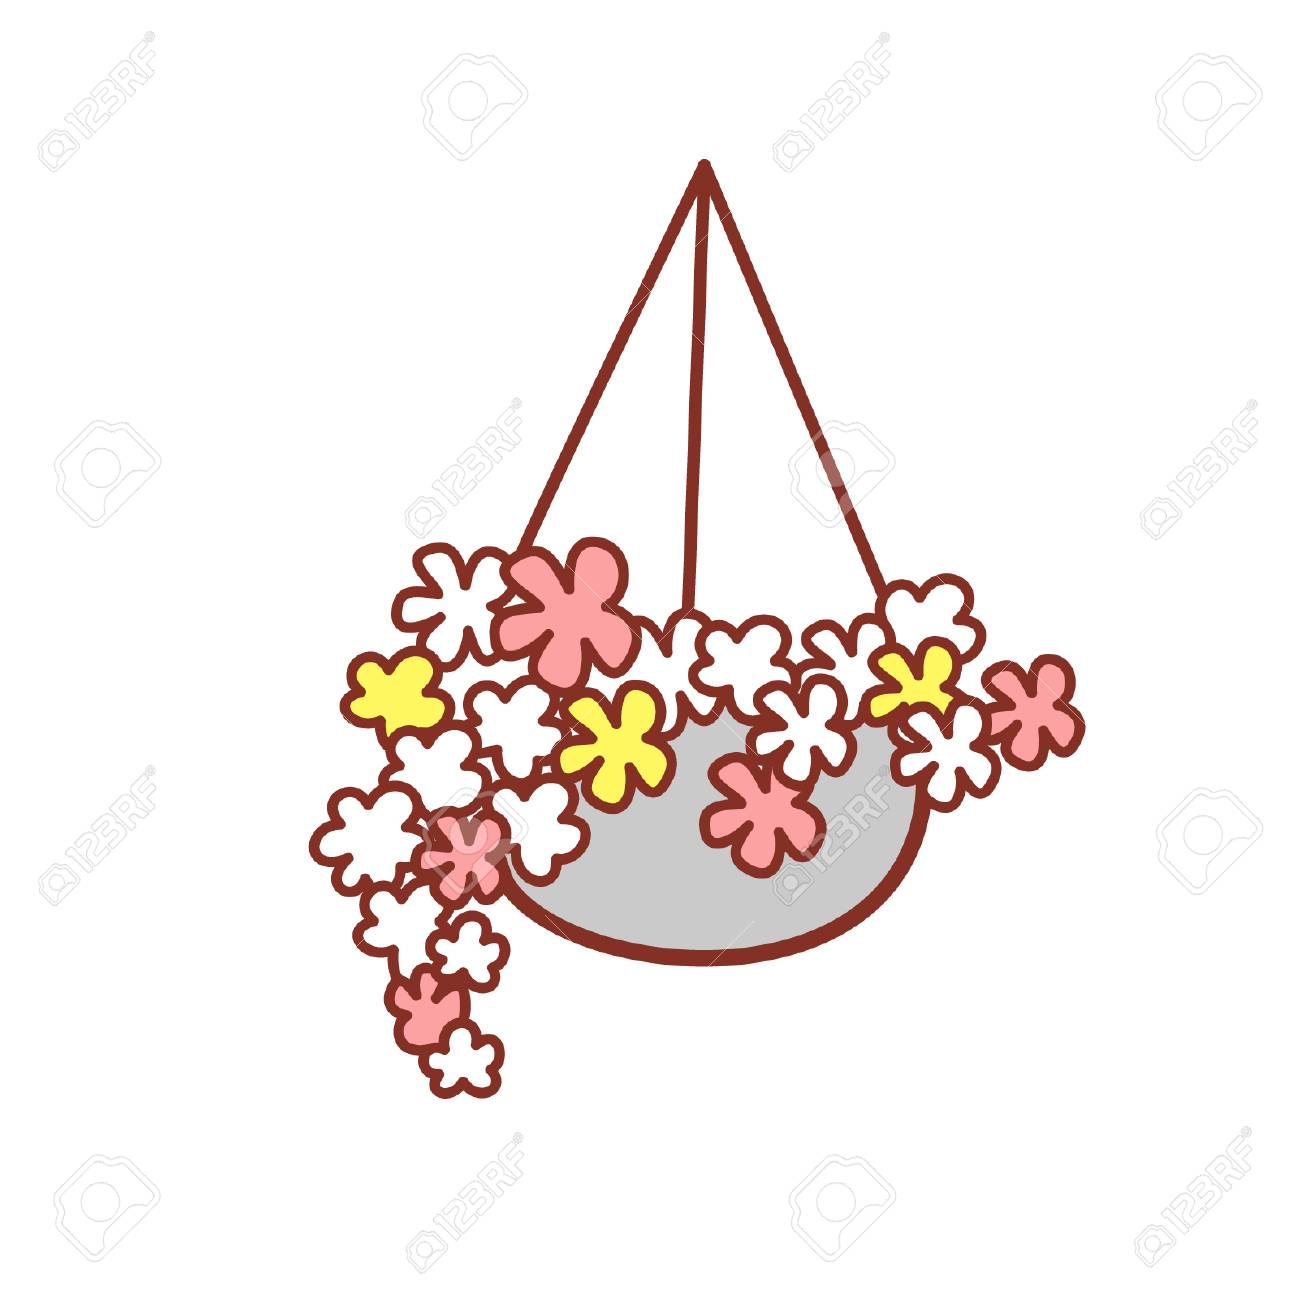 Cartoon hanging basket with flowers.